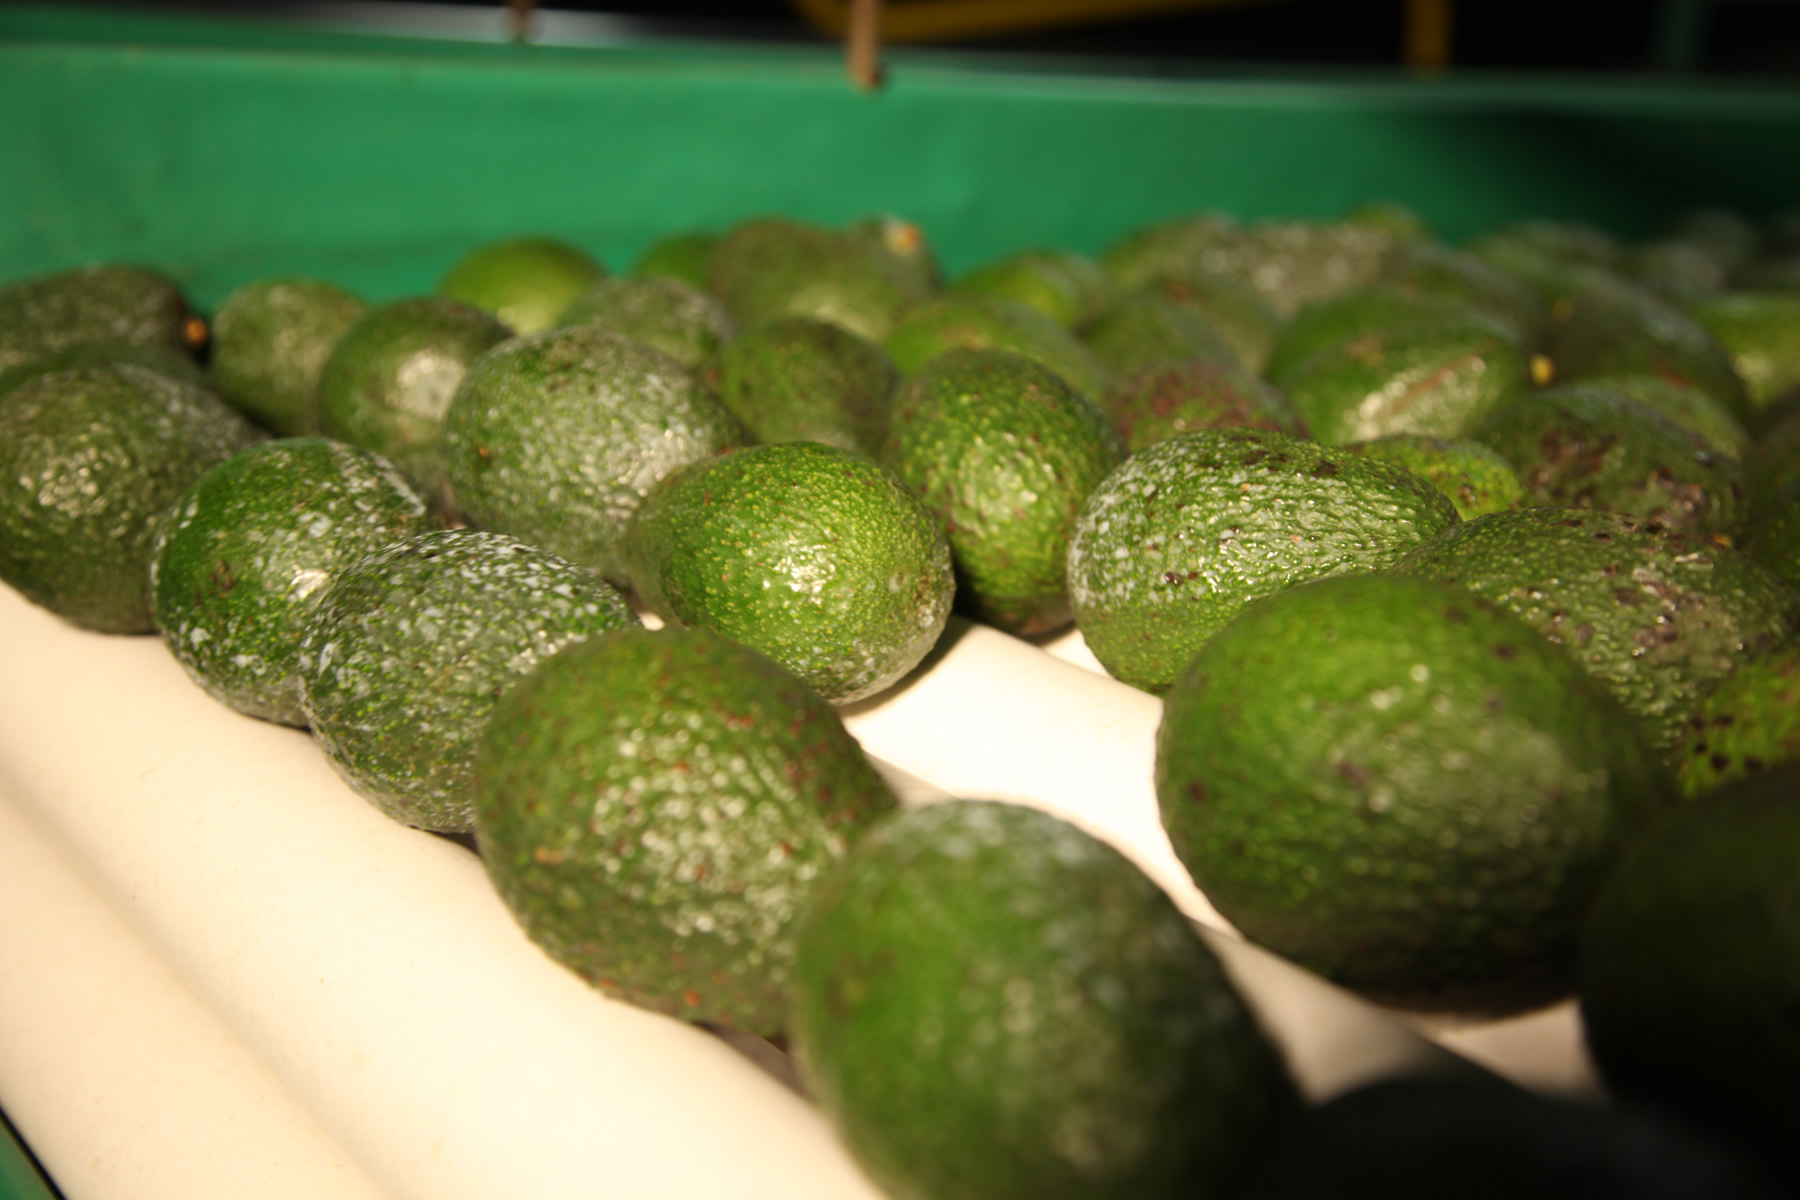 Aguacate00006